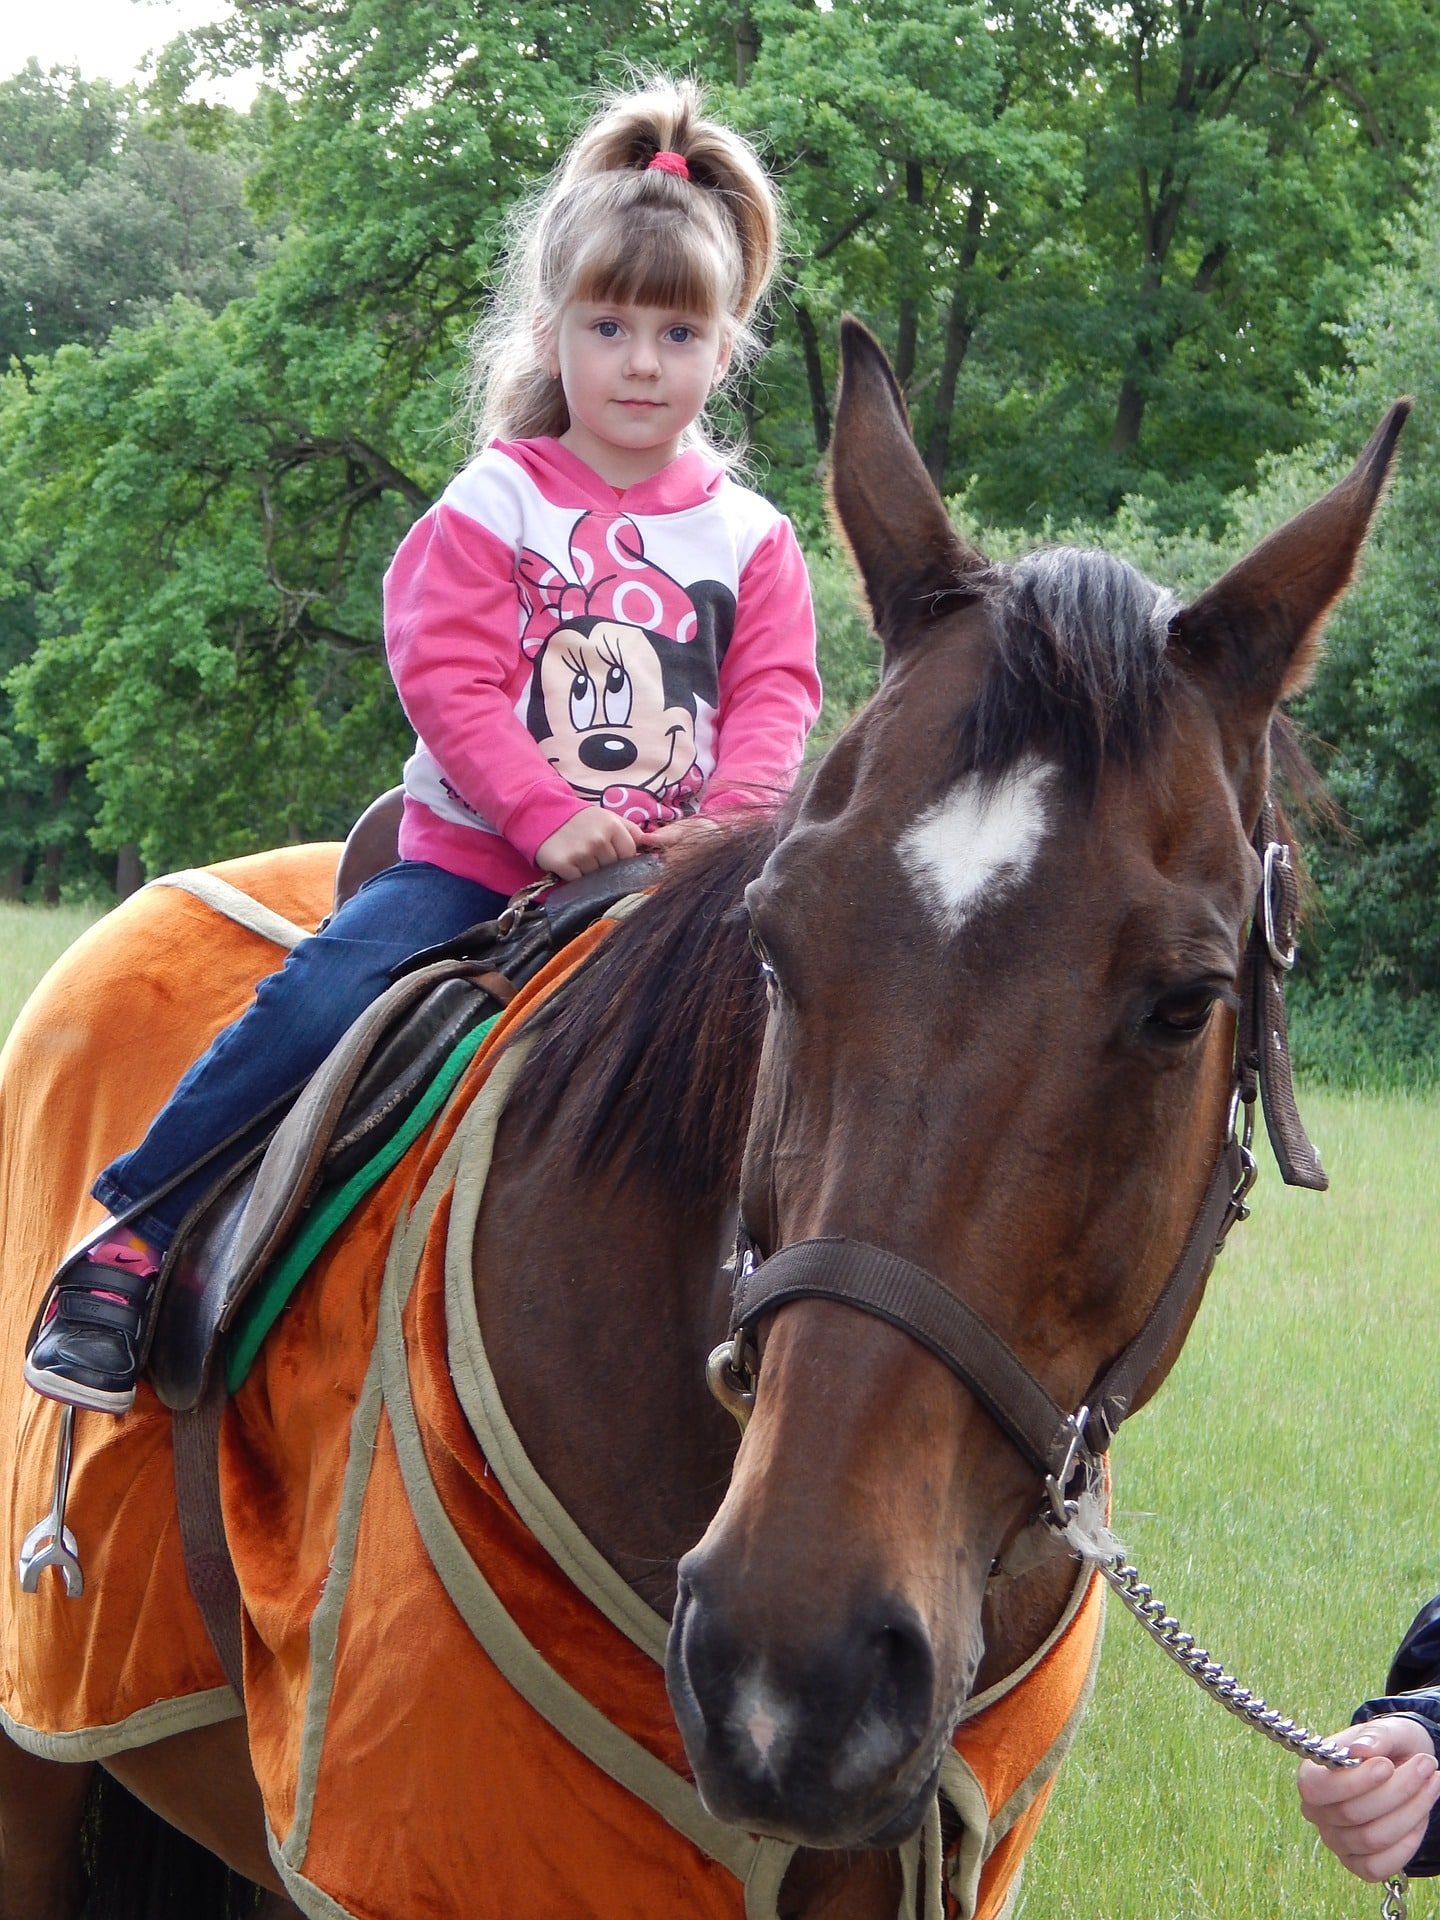 Should I buy my daughter a horse? girls love riding horses